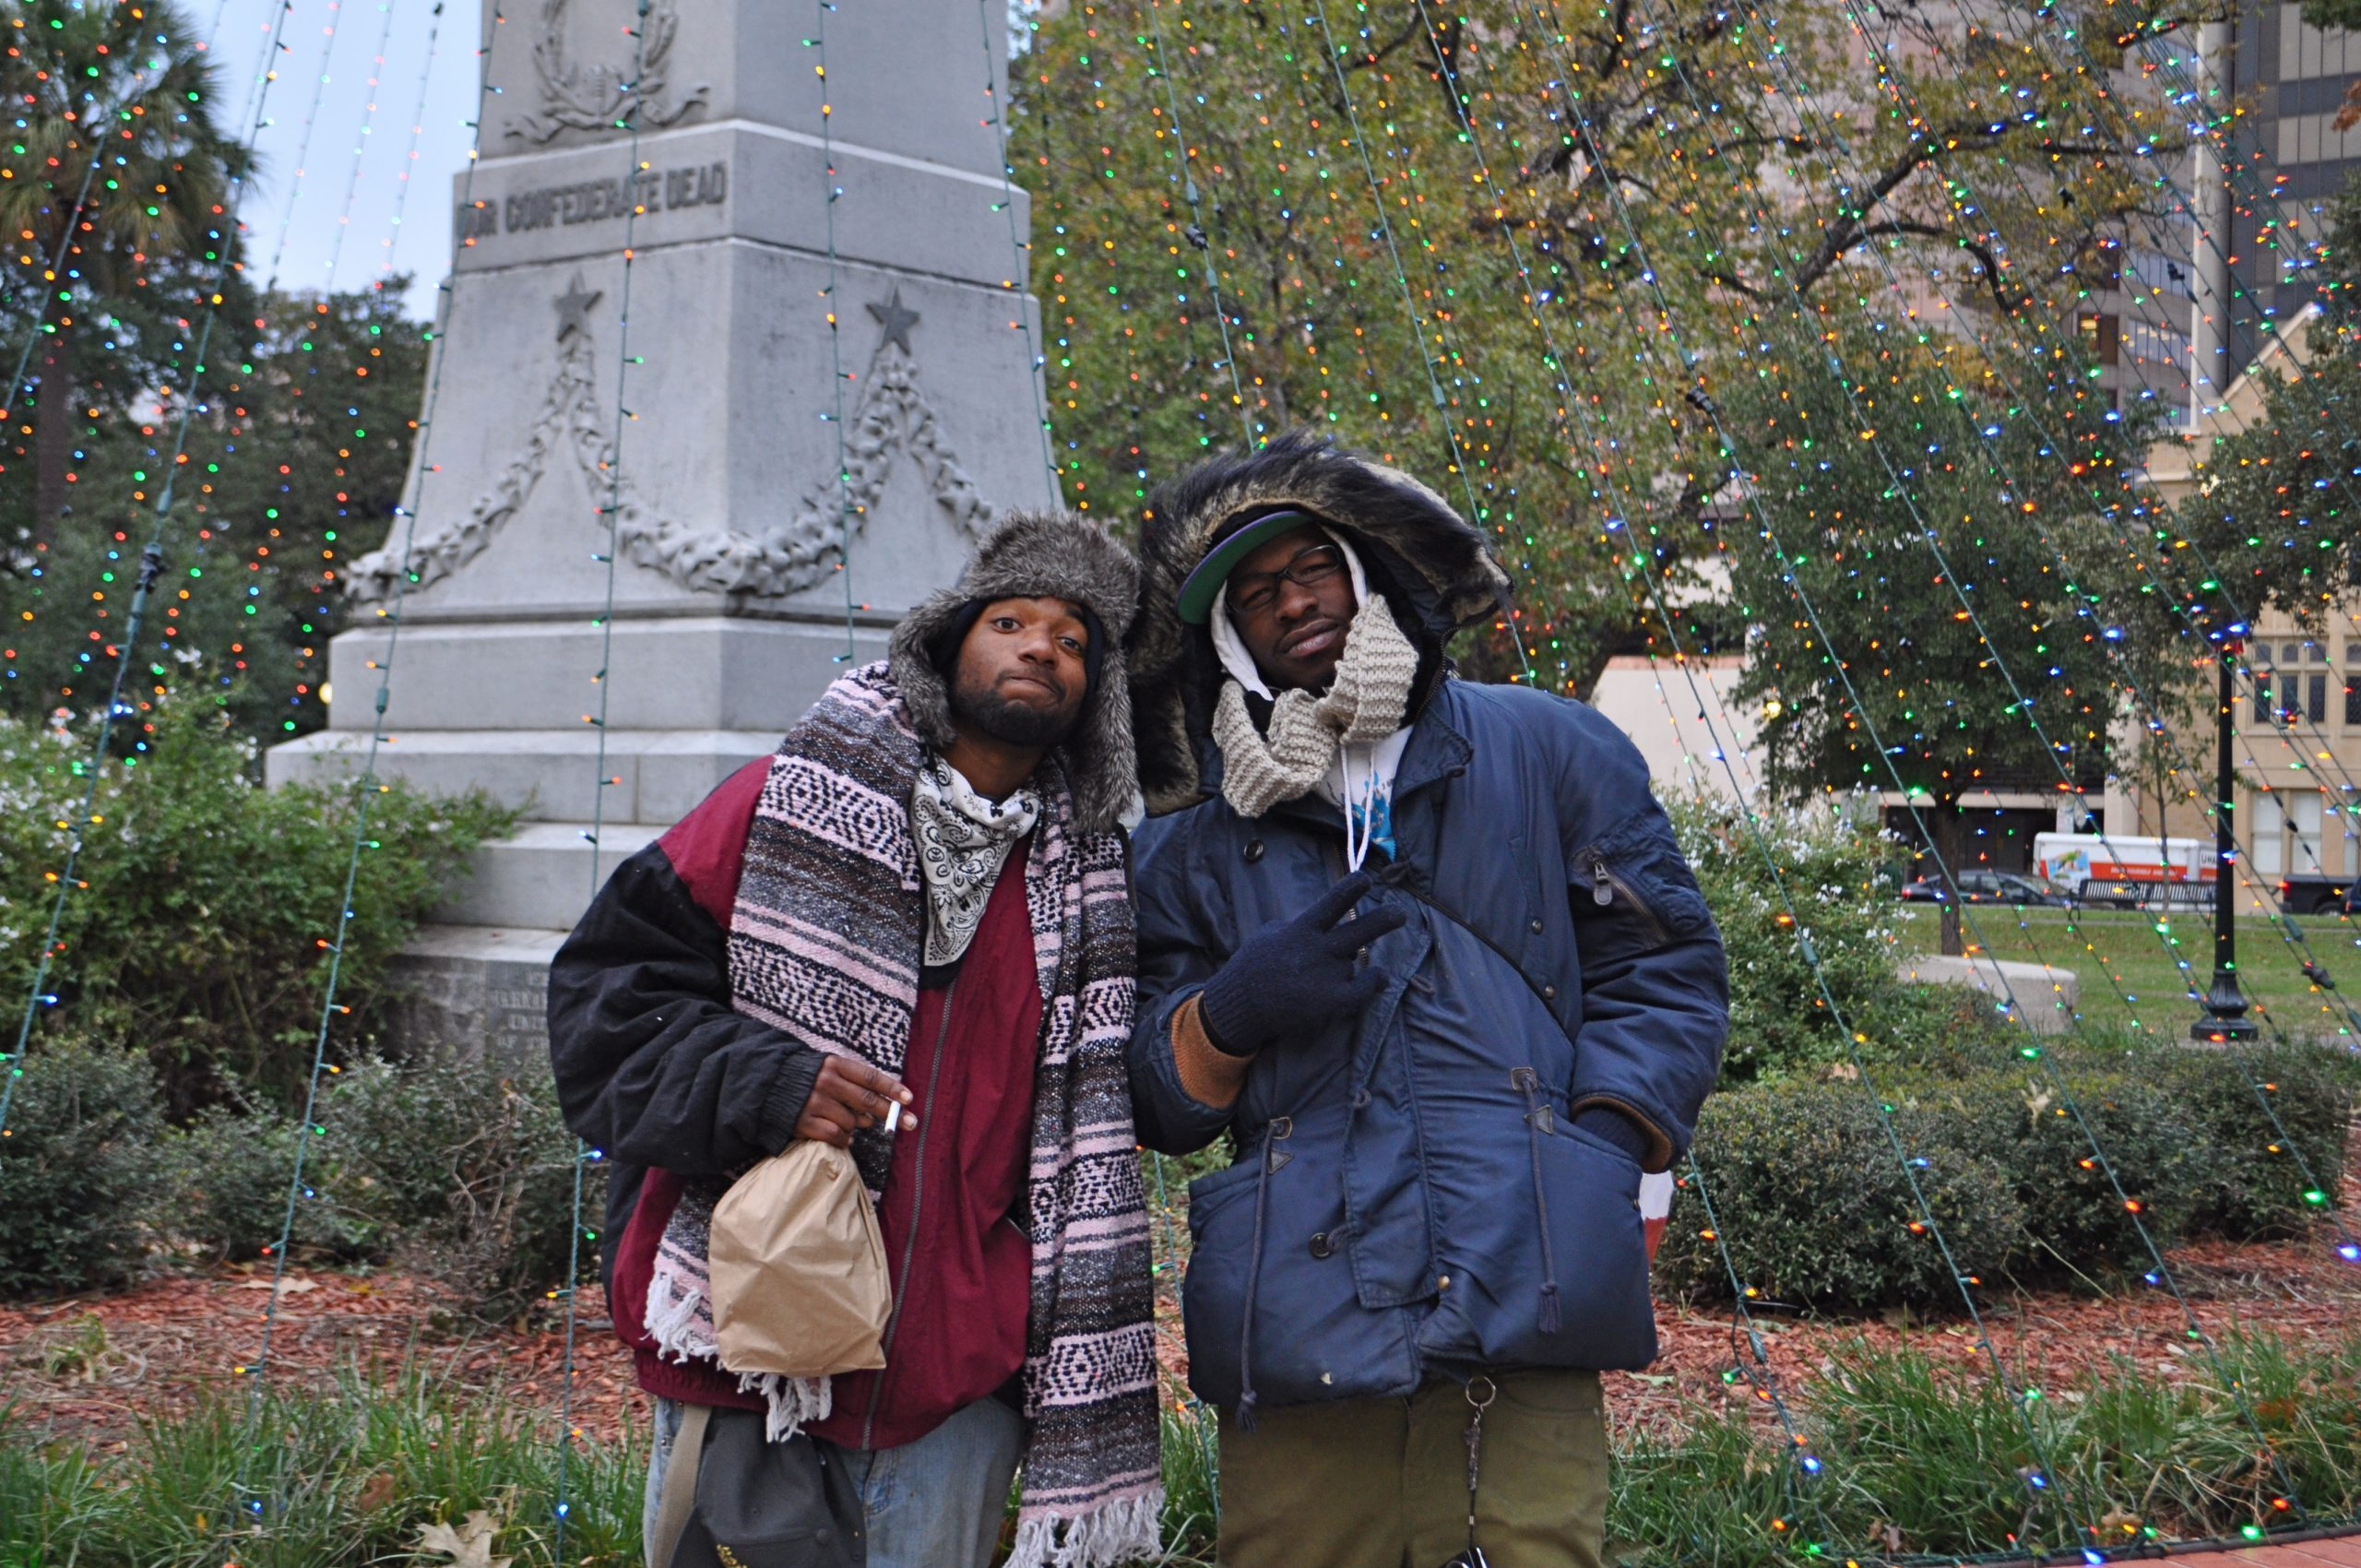 Locals Chief (left) and Red bundled up in Travis Park on a cold afternoon in San Antonio. Red said he was lucky enough to find a solid winter coat, Chief's wind breaker leaves much to be desired when temperatures drop below 30 degrees at night. Photo by Iris Dimmick.